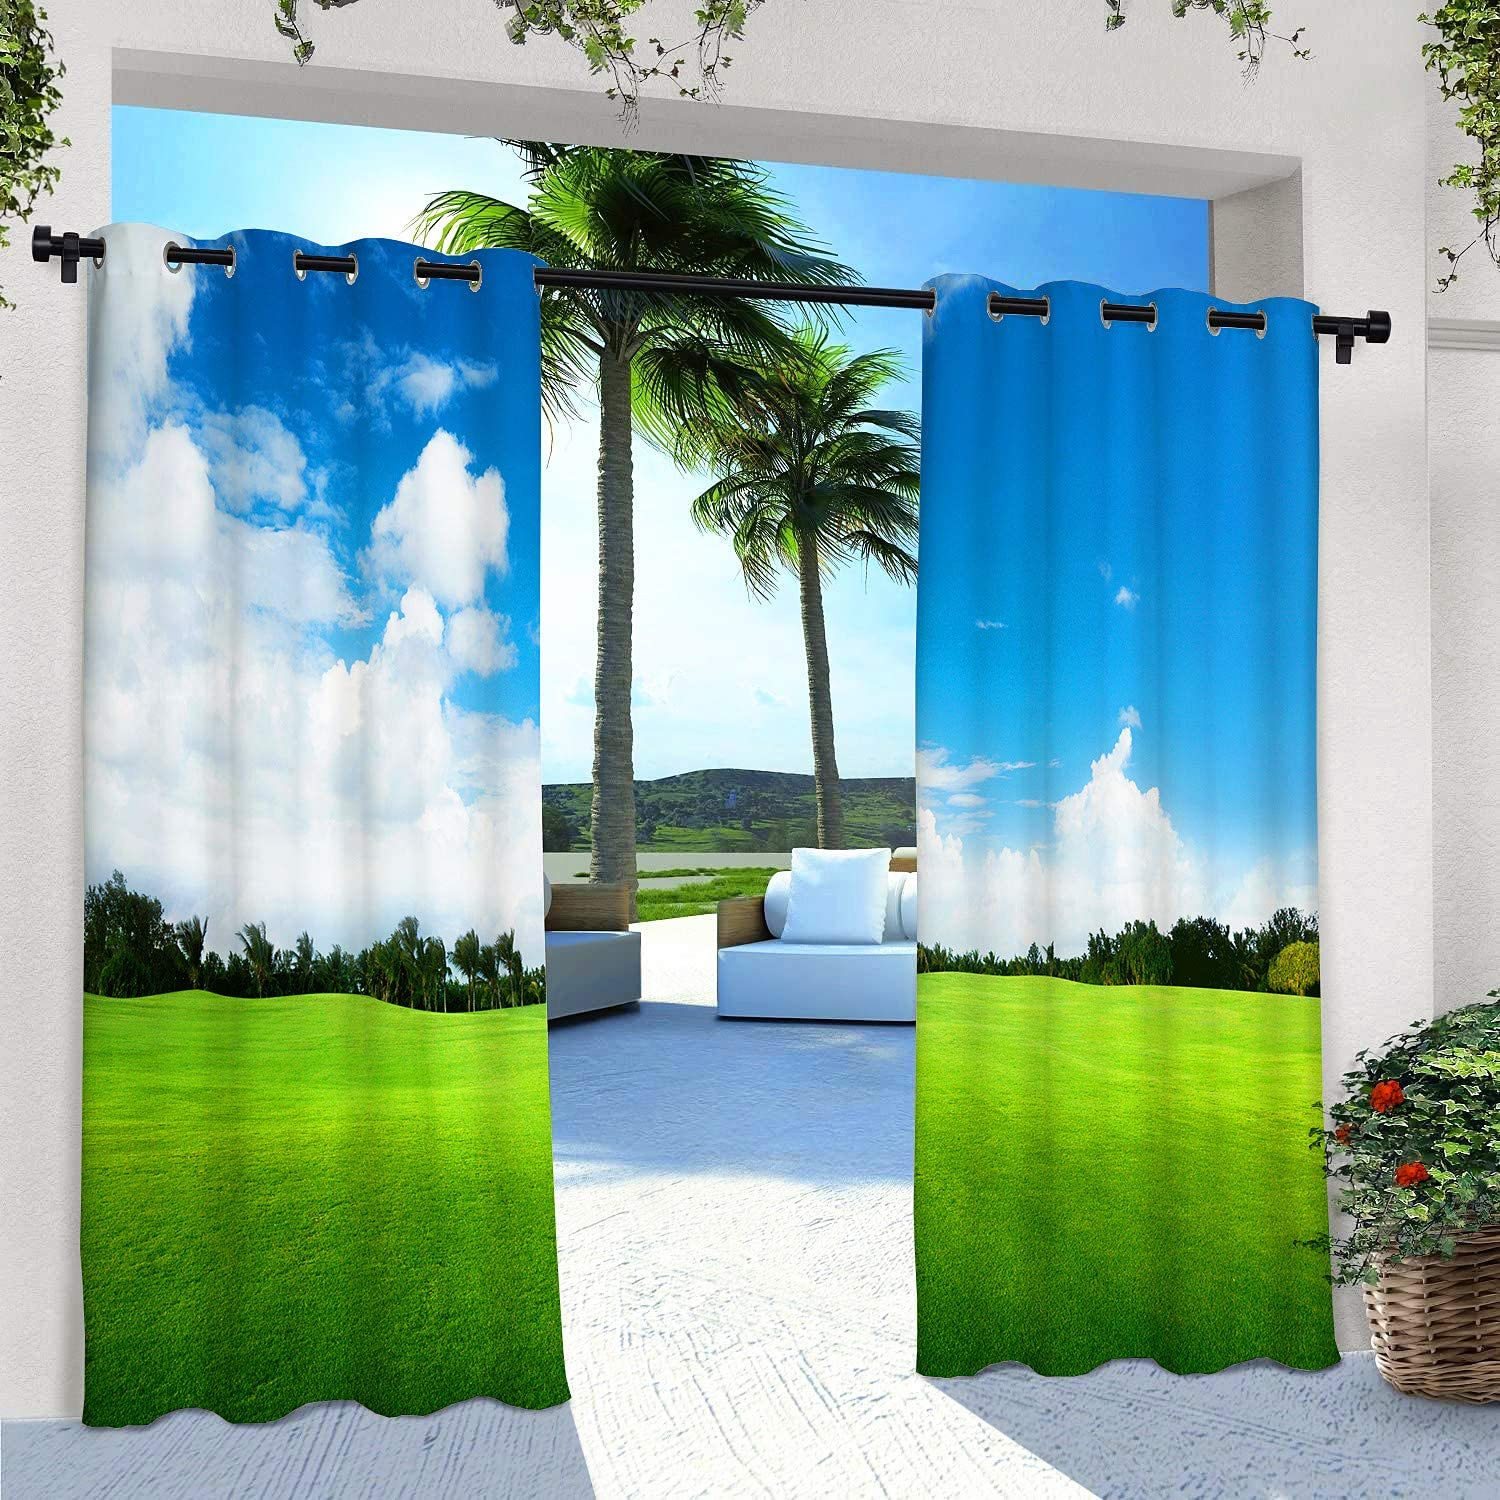 Privacy Curtain for Pergola//Deck//Gazebo//Porch//Cabana 108 X 84 Inch Eyelet Curtains with Palm Tree Grassland Natural Landscape Pattern ANHOPE Indoor//Outdoor Curtains for Patio Waterproof 2 Panels